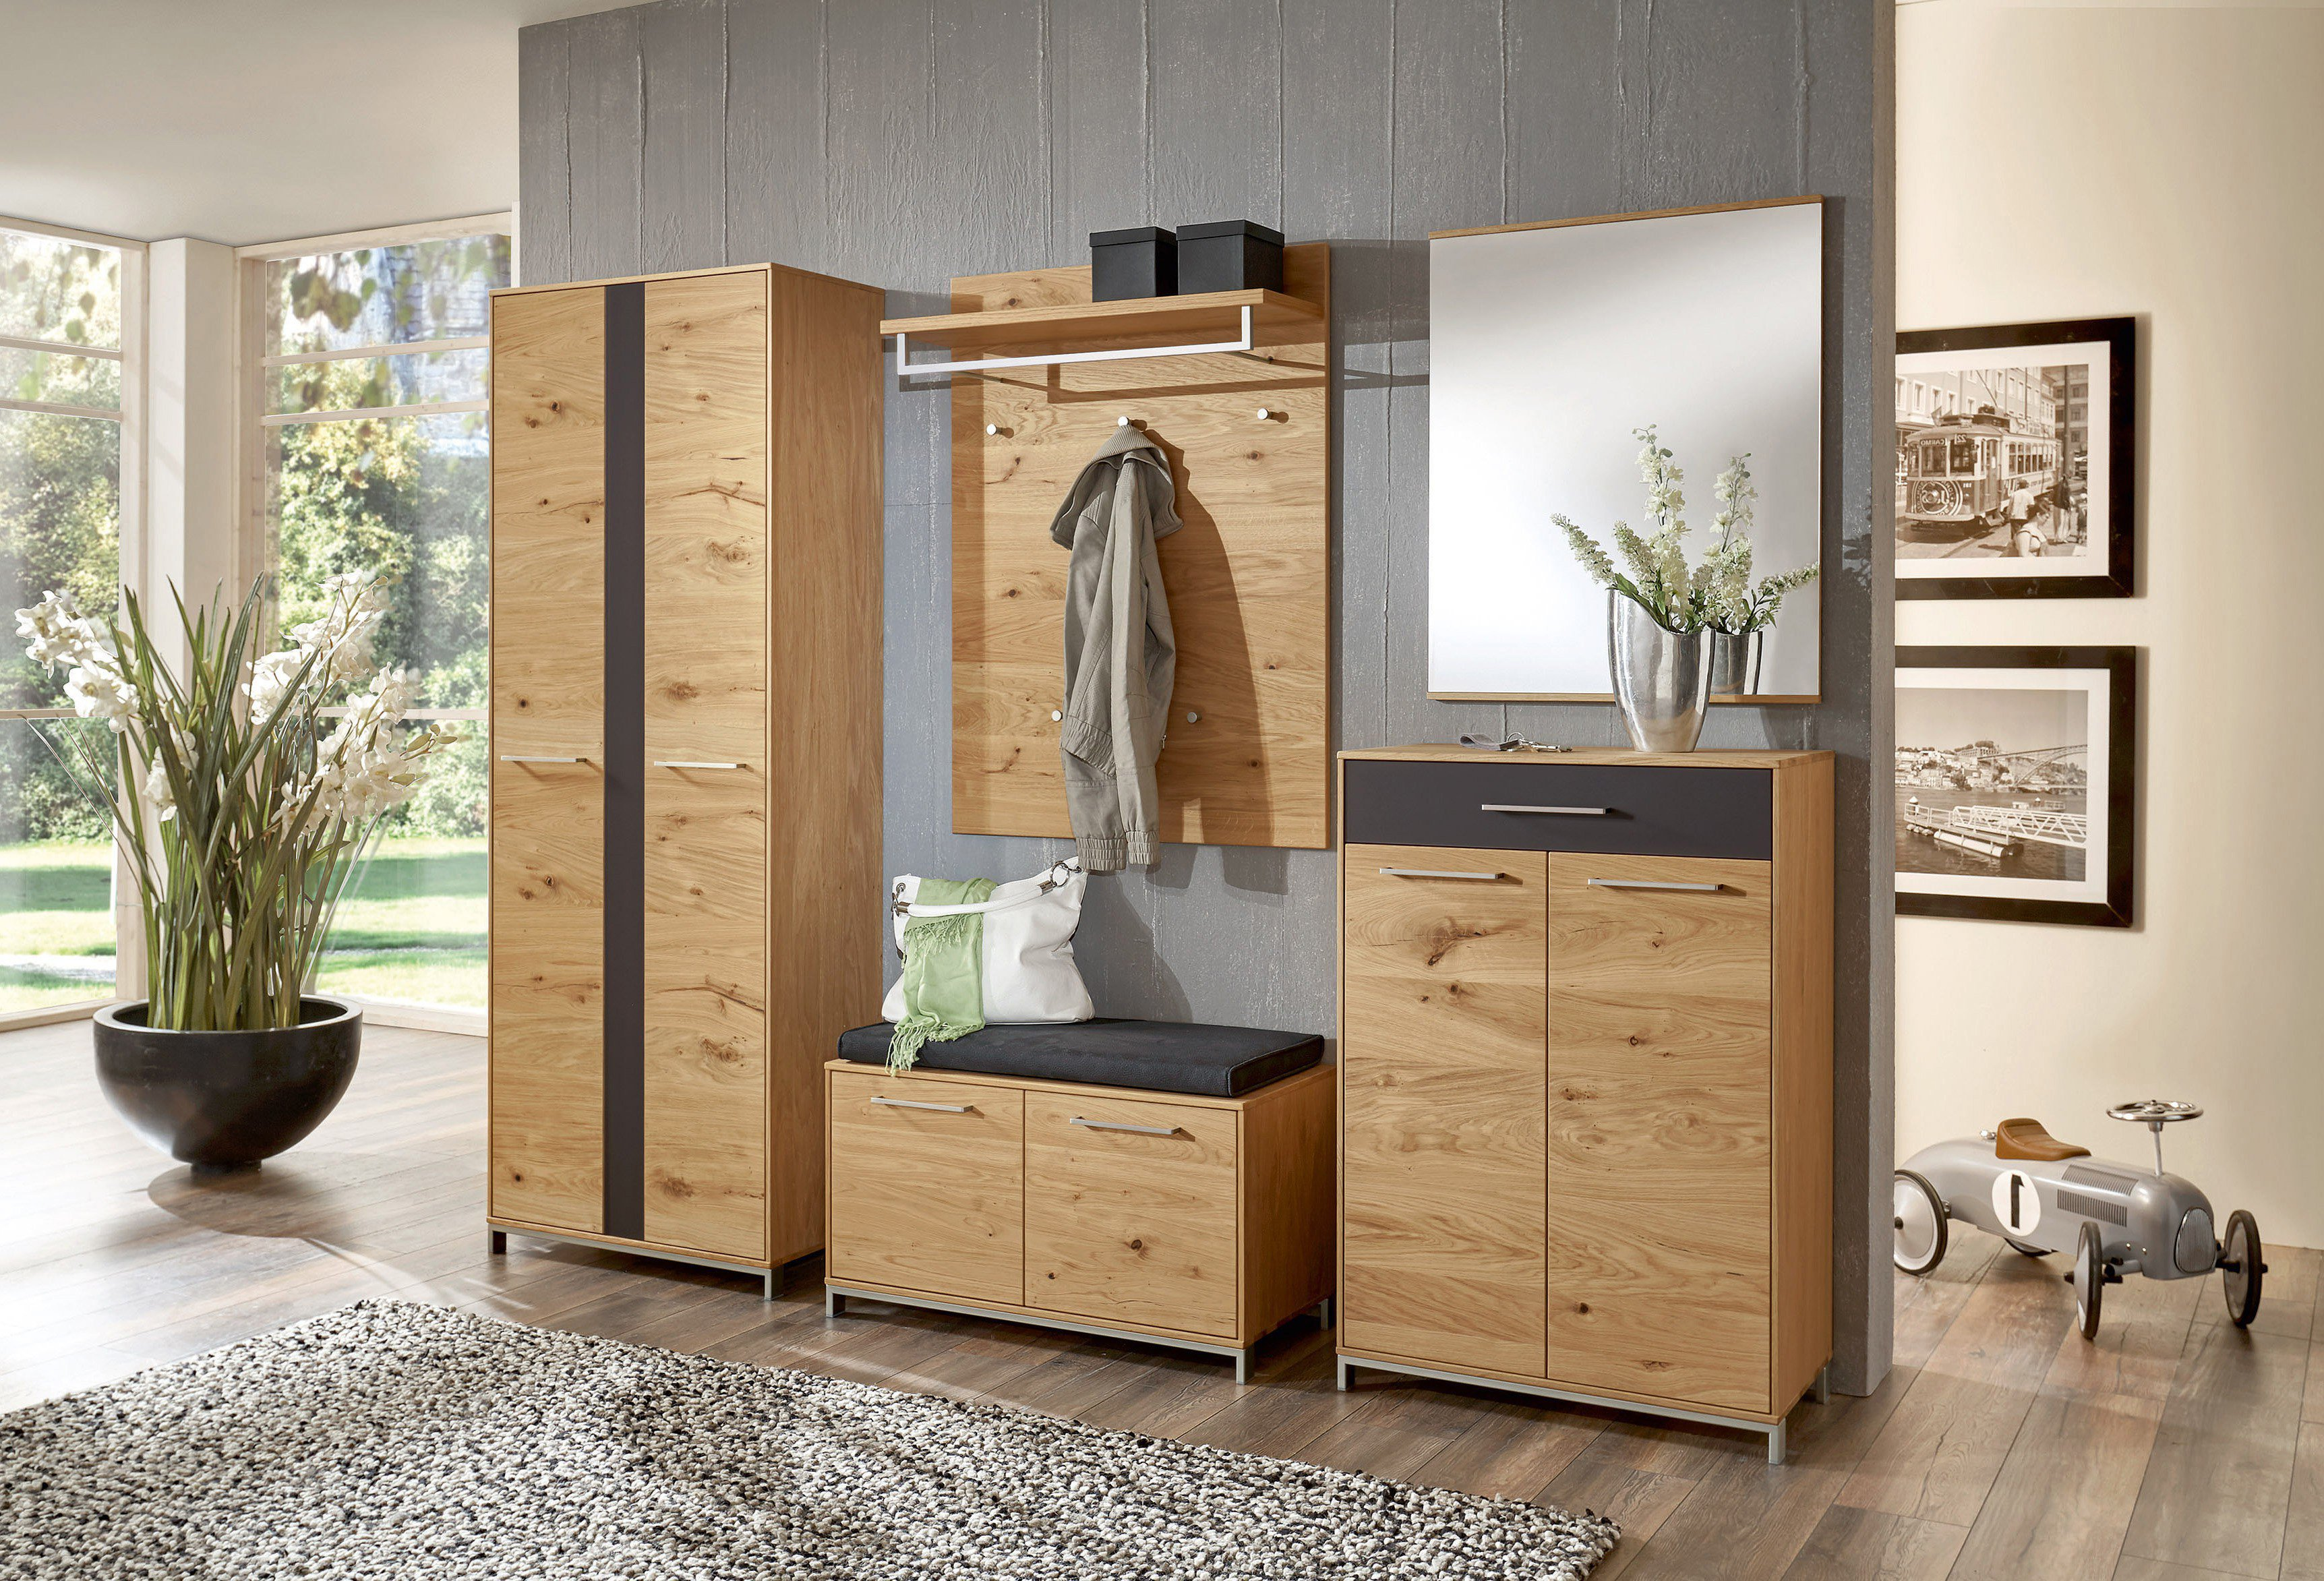 voss garderobe vedo eiche anthrazit m bel letz ihr. Black Bedroom Furniture Sets. Home Design Ideas